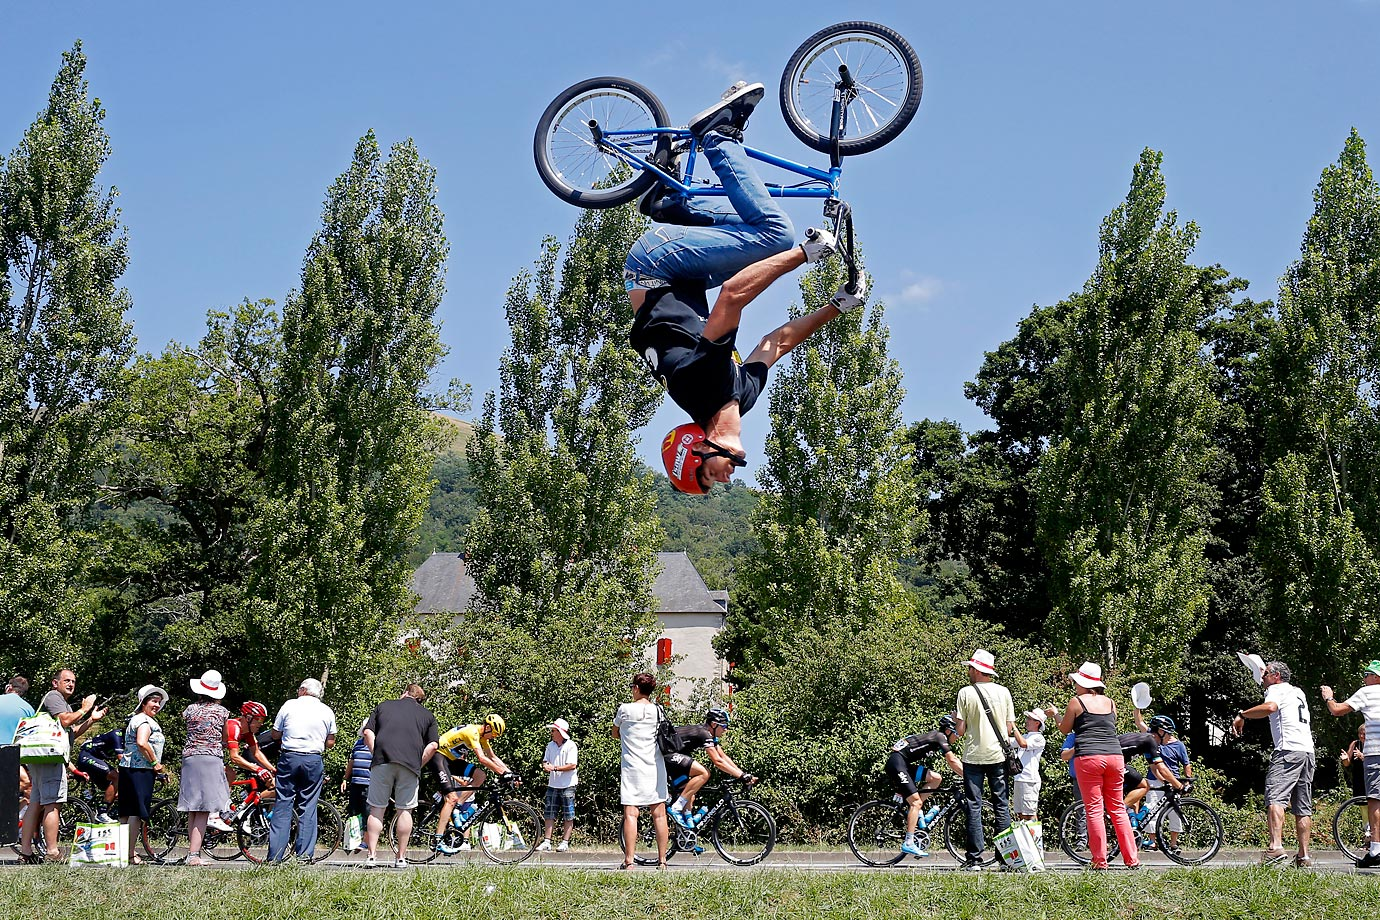 A BMX bike stunt as the pack of Tour de France riders pass by.